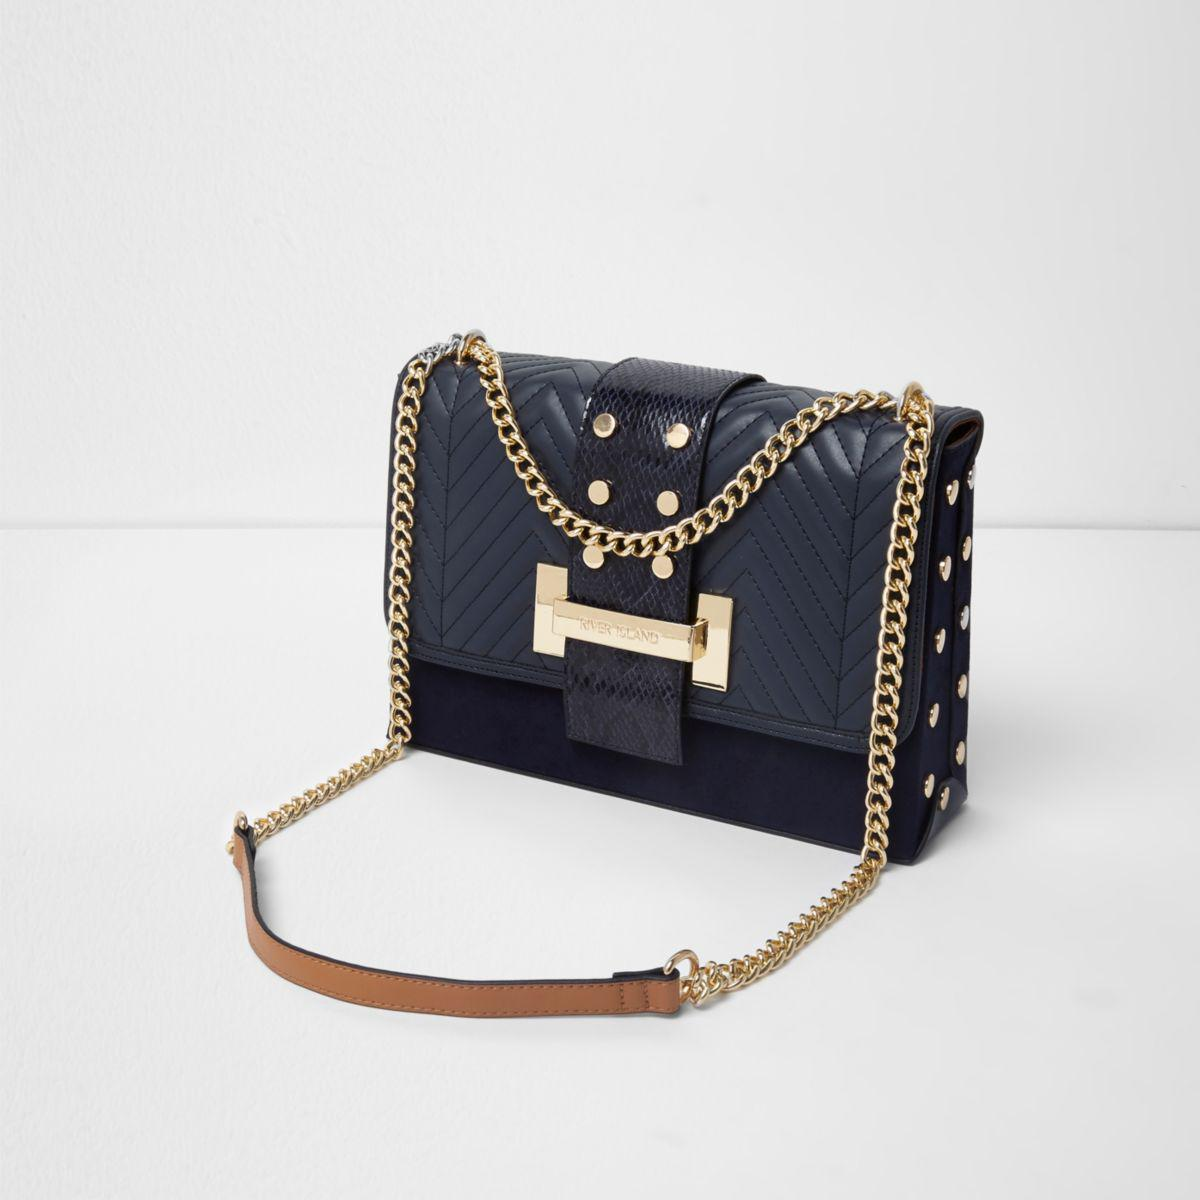 95c116d796 ... Women Joules Tourer Bright Cross Body Bag French Navy 100% Polyurethane  5Z0HC6CZAOXZ0KA buy online 0c256  Lyst - River Island Navy Studded Tab  Underarm ...